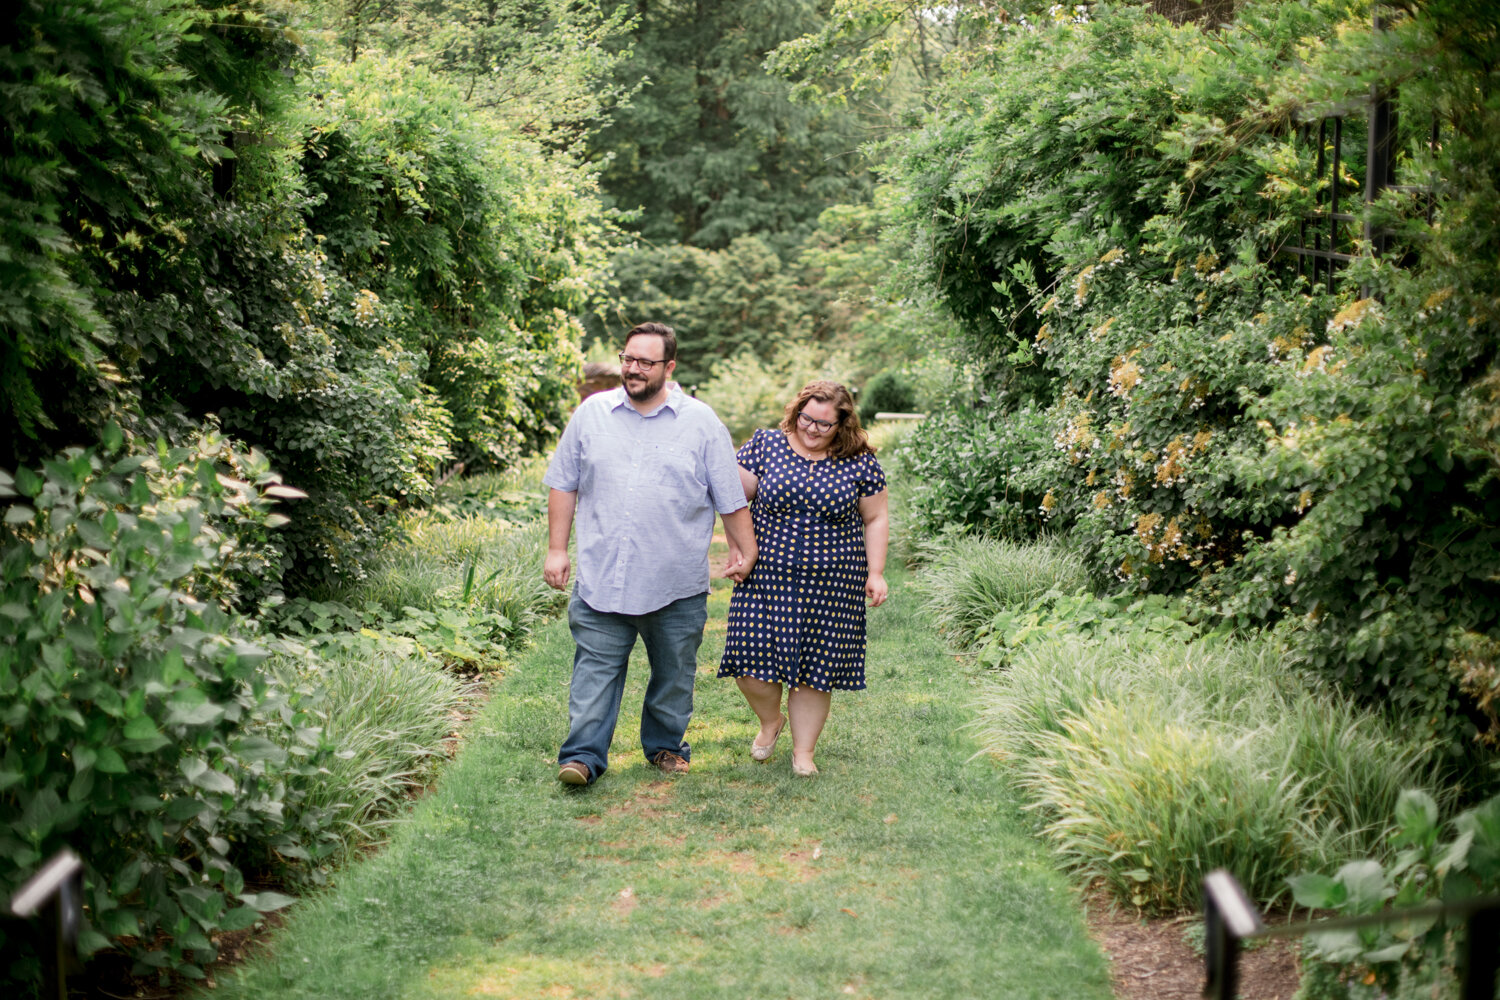 morris-arboretum-chestnut-hill-garden-engagement-session-philadelphia-wedding-photography-17.jpg